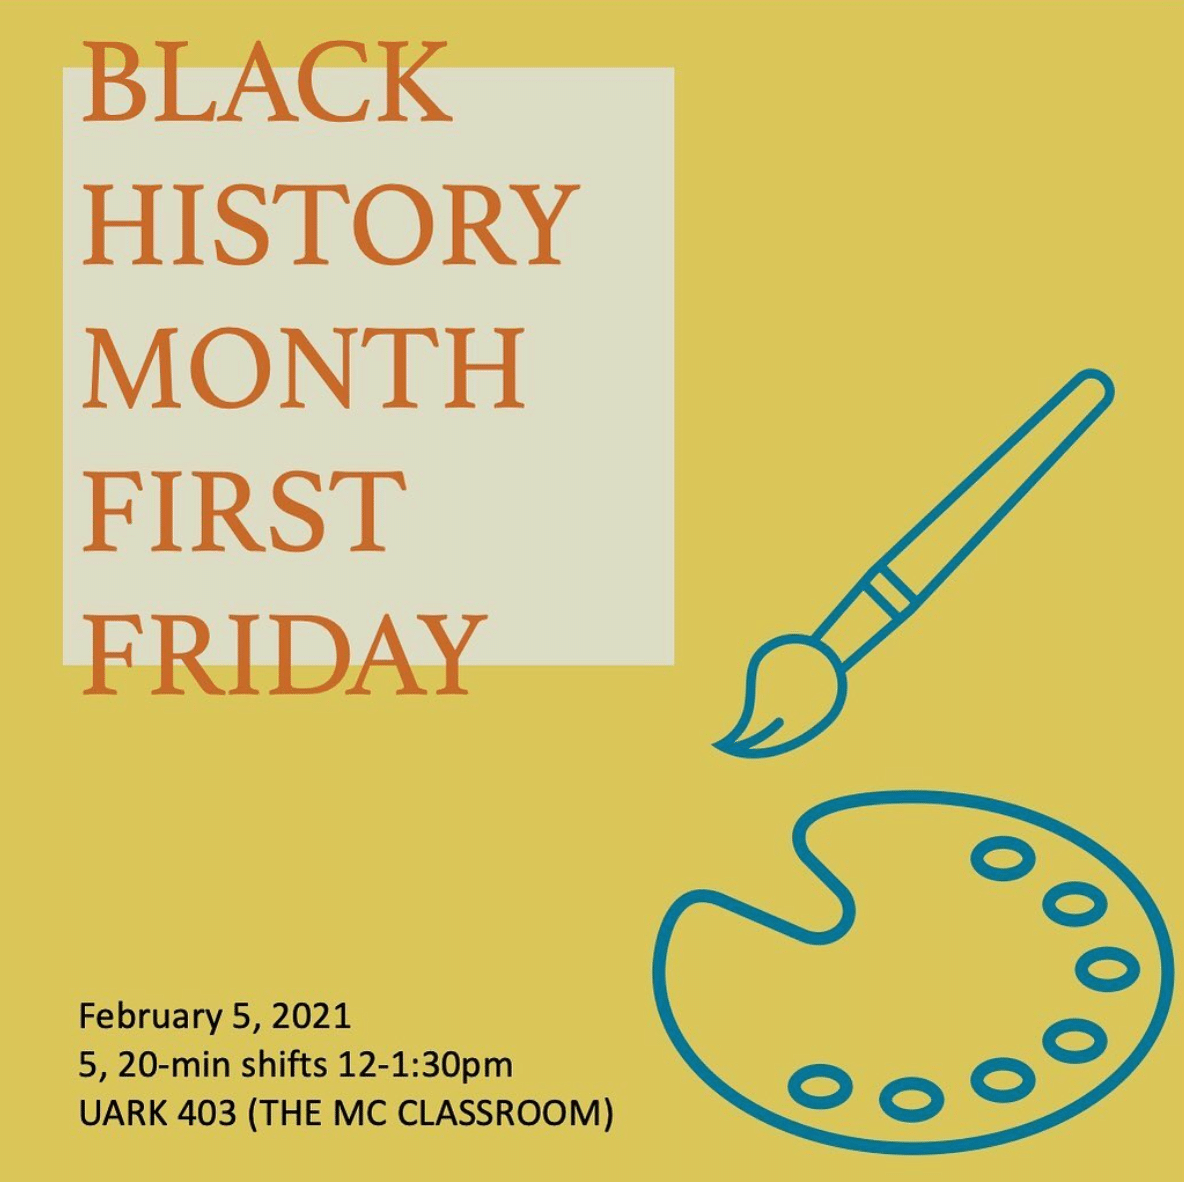 Black History Month First Friday